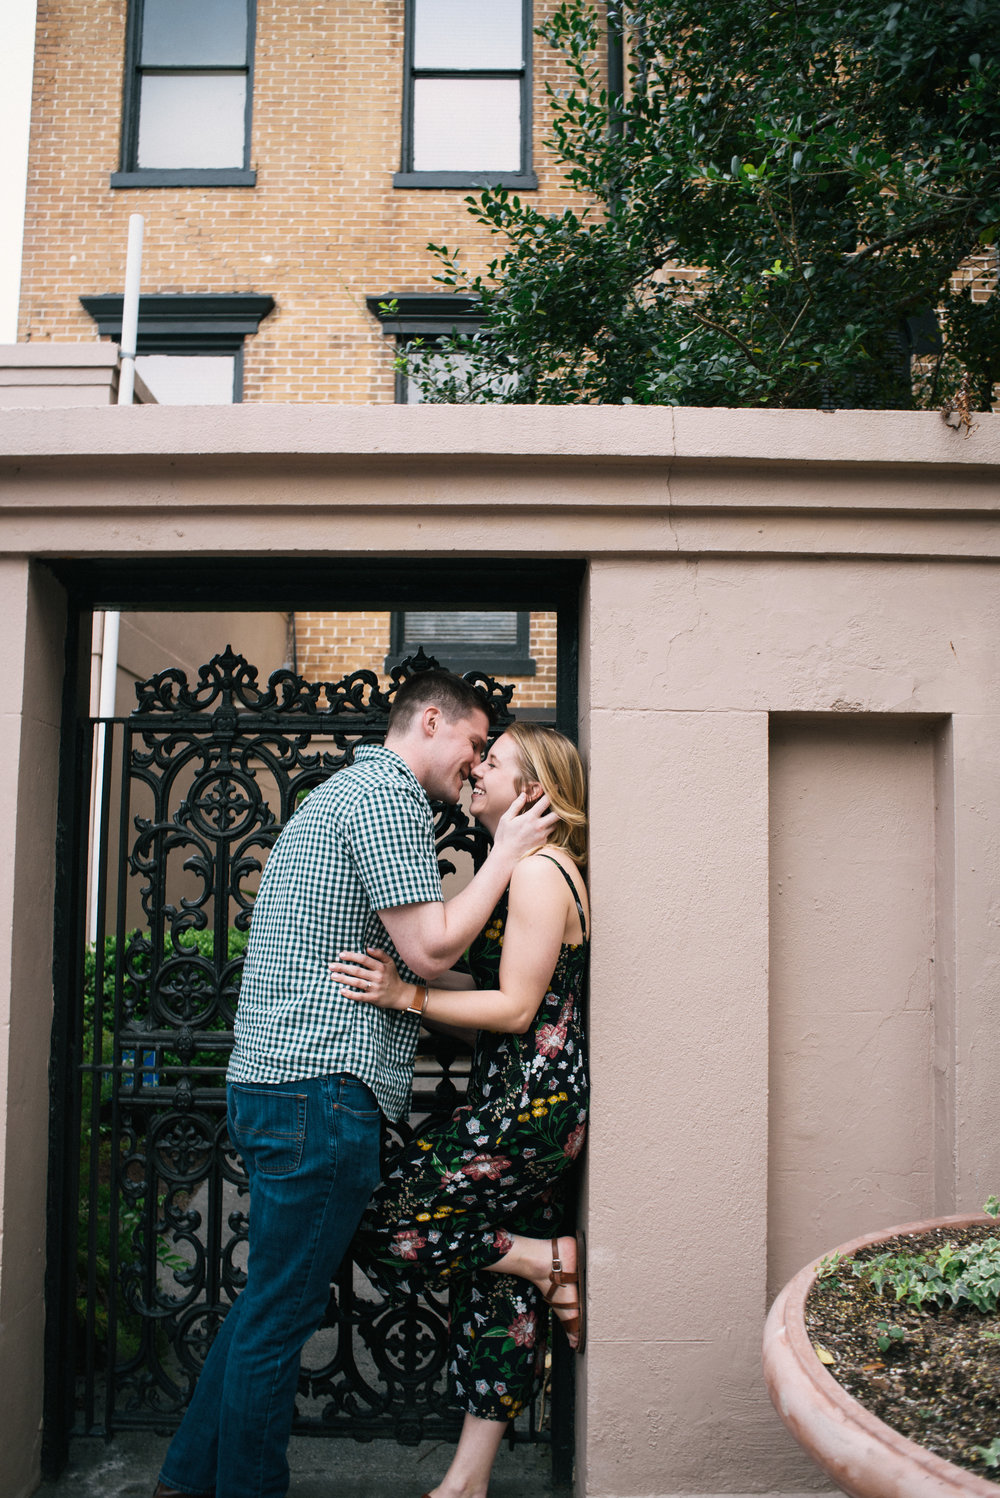 jake-and-allie-engagement-forsyth-park-savannah-flytographer- (33 of 47).jpg